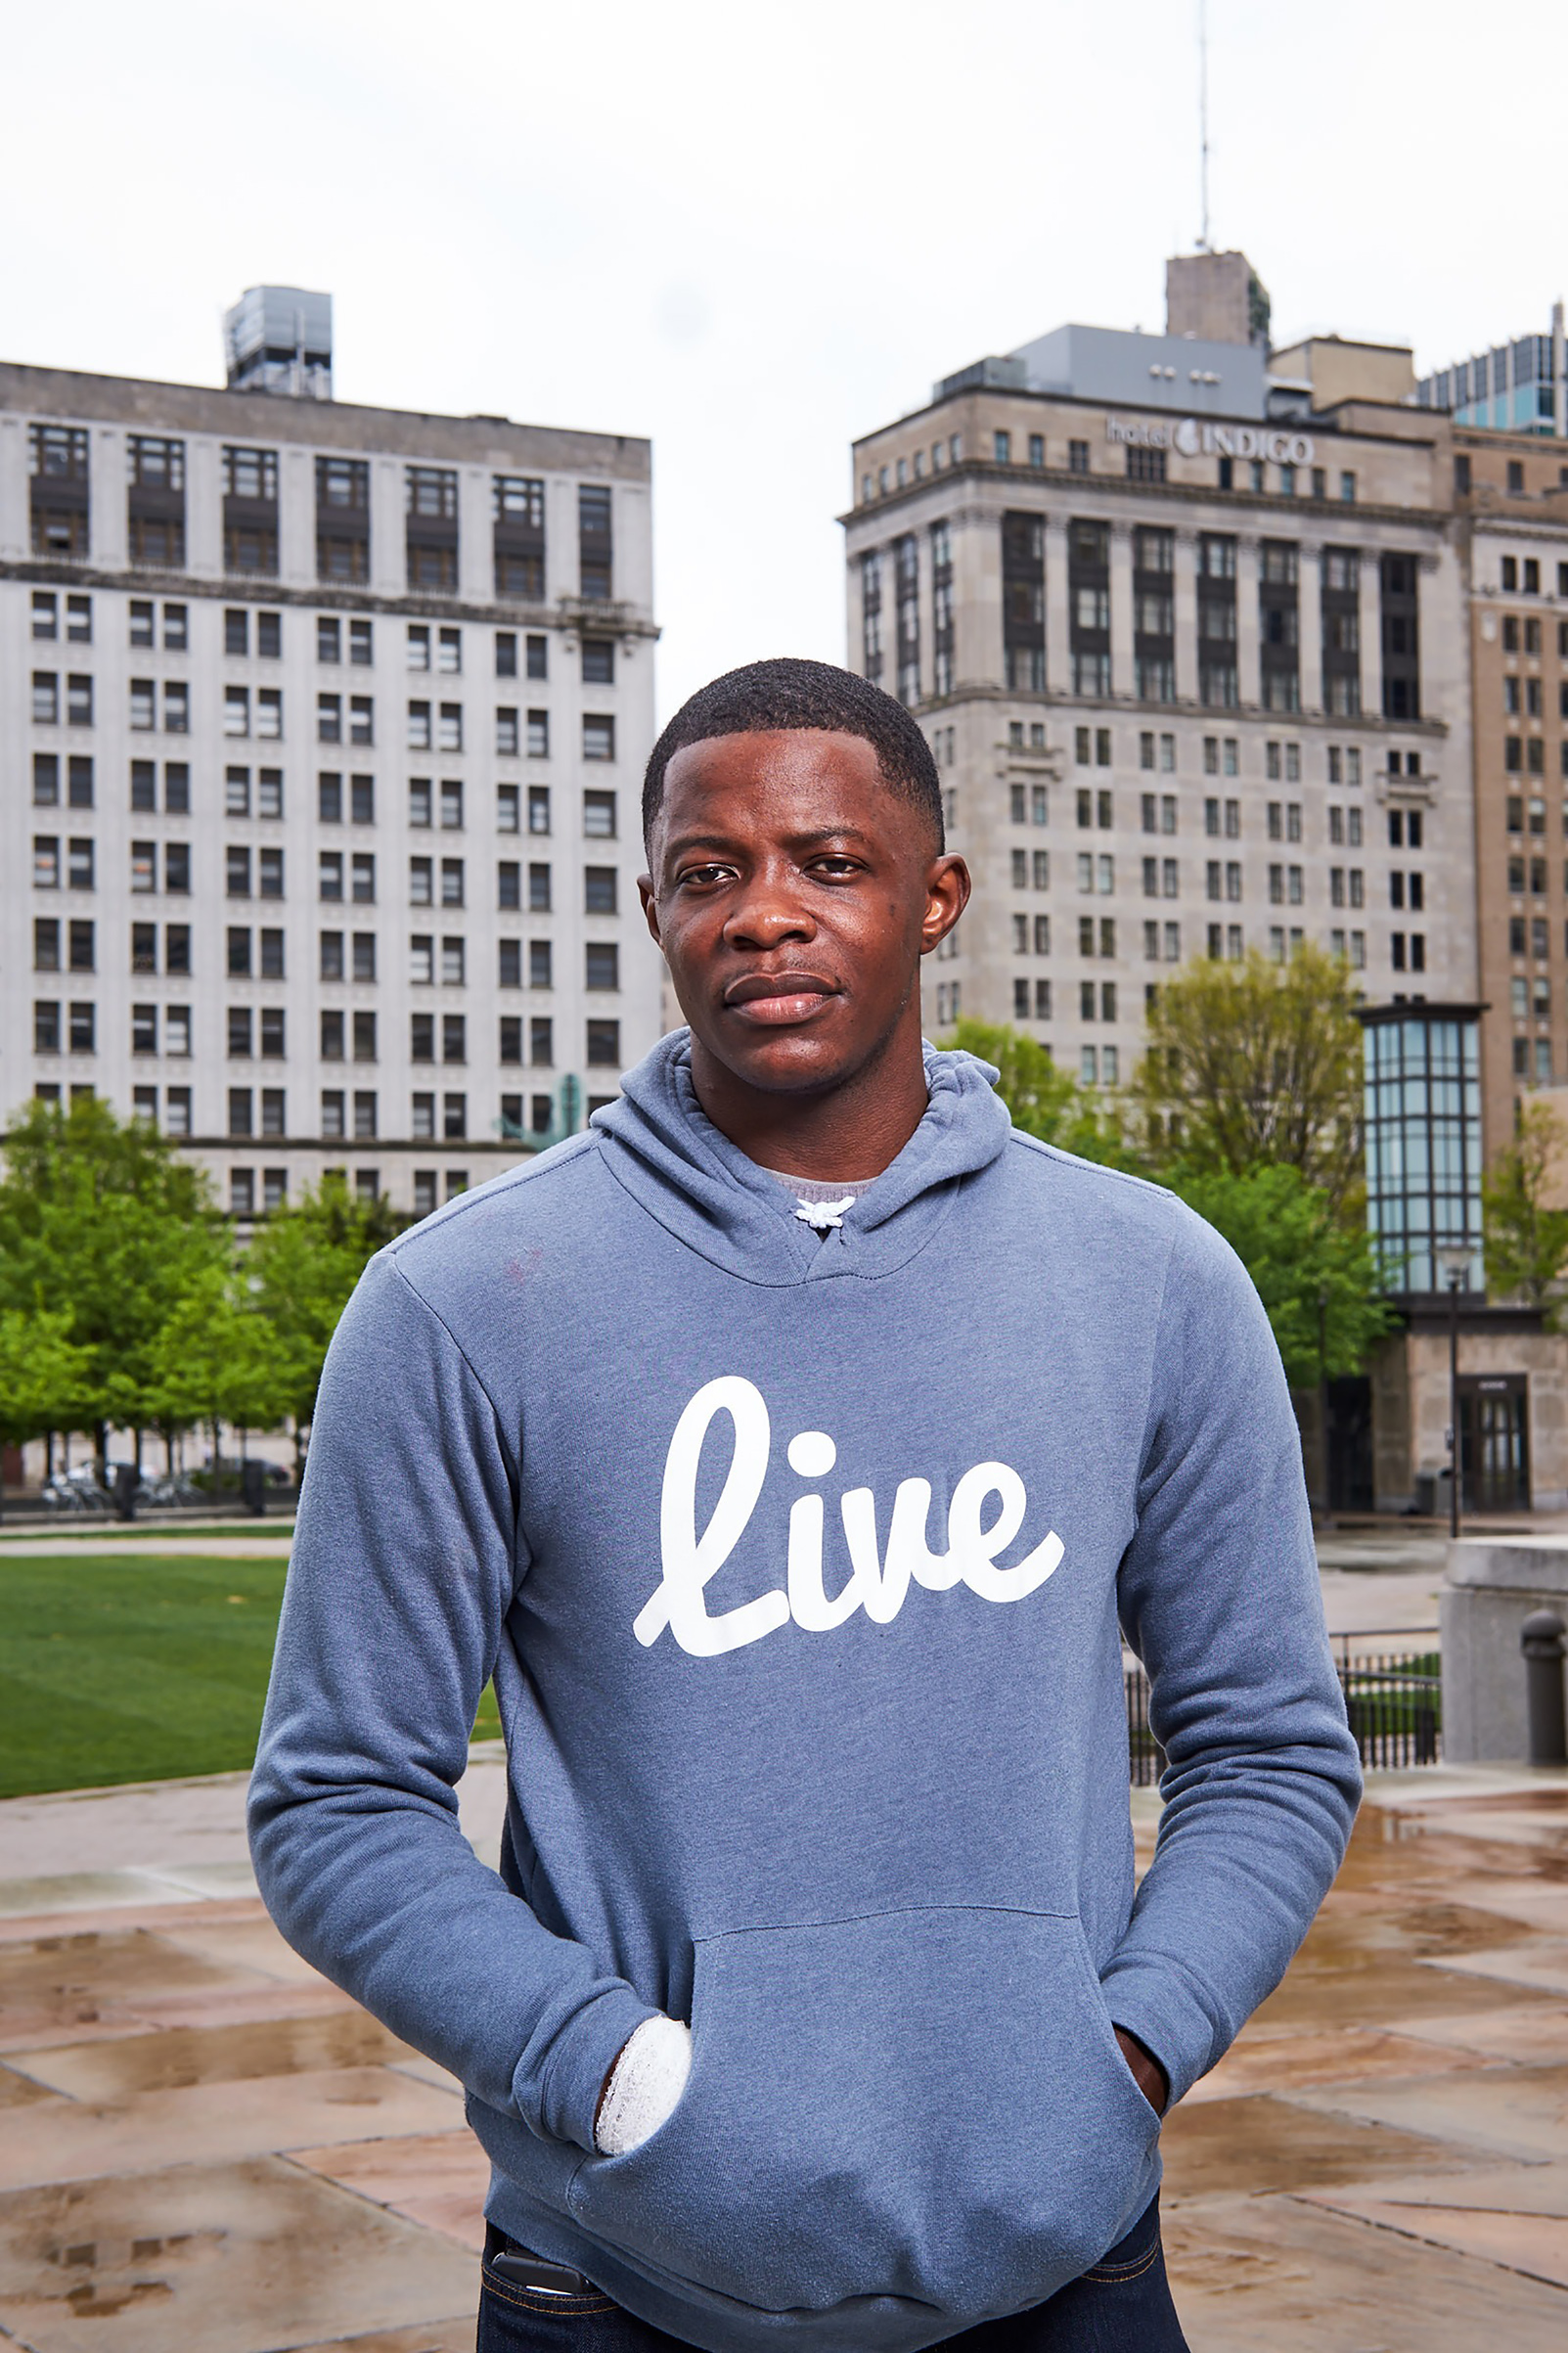 James Shaw Jr., who disarmed the man who opened fire at a Waffle House Sunday morning, in Nashville on April 23, 2018.